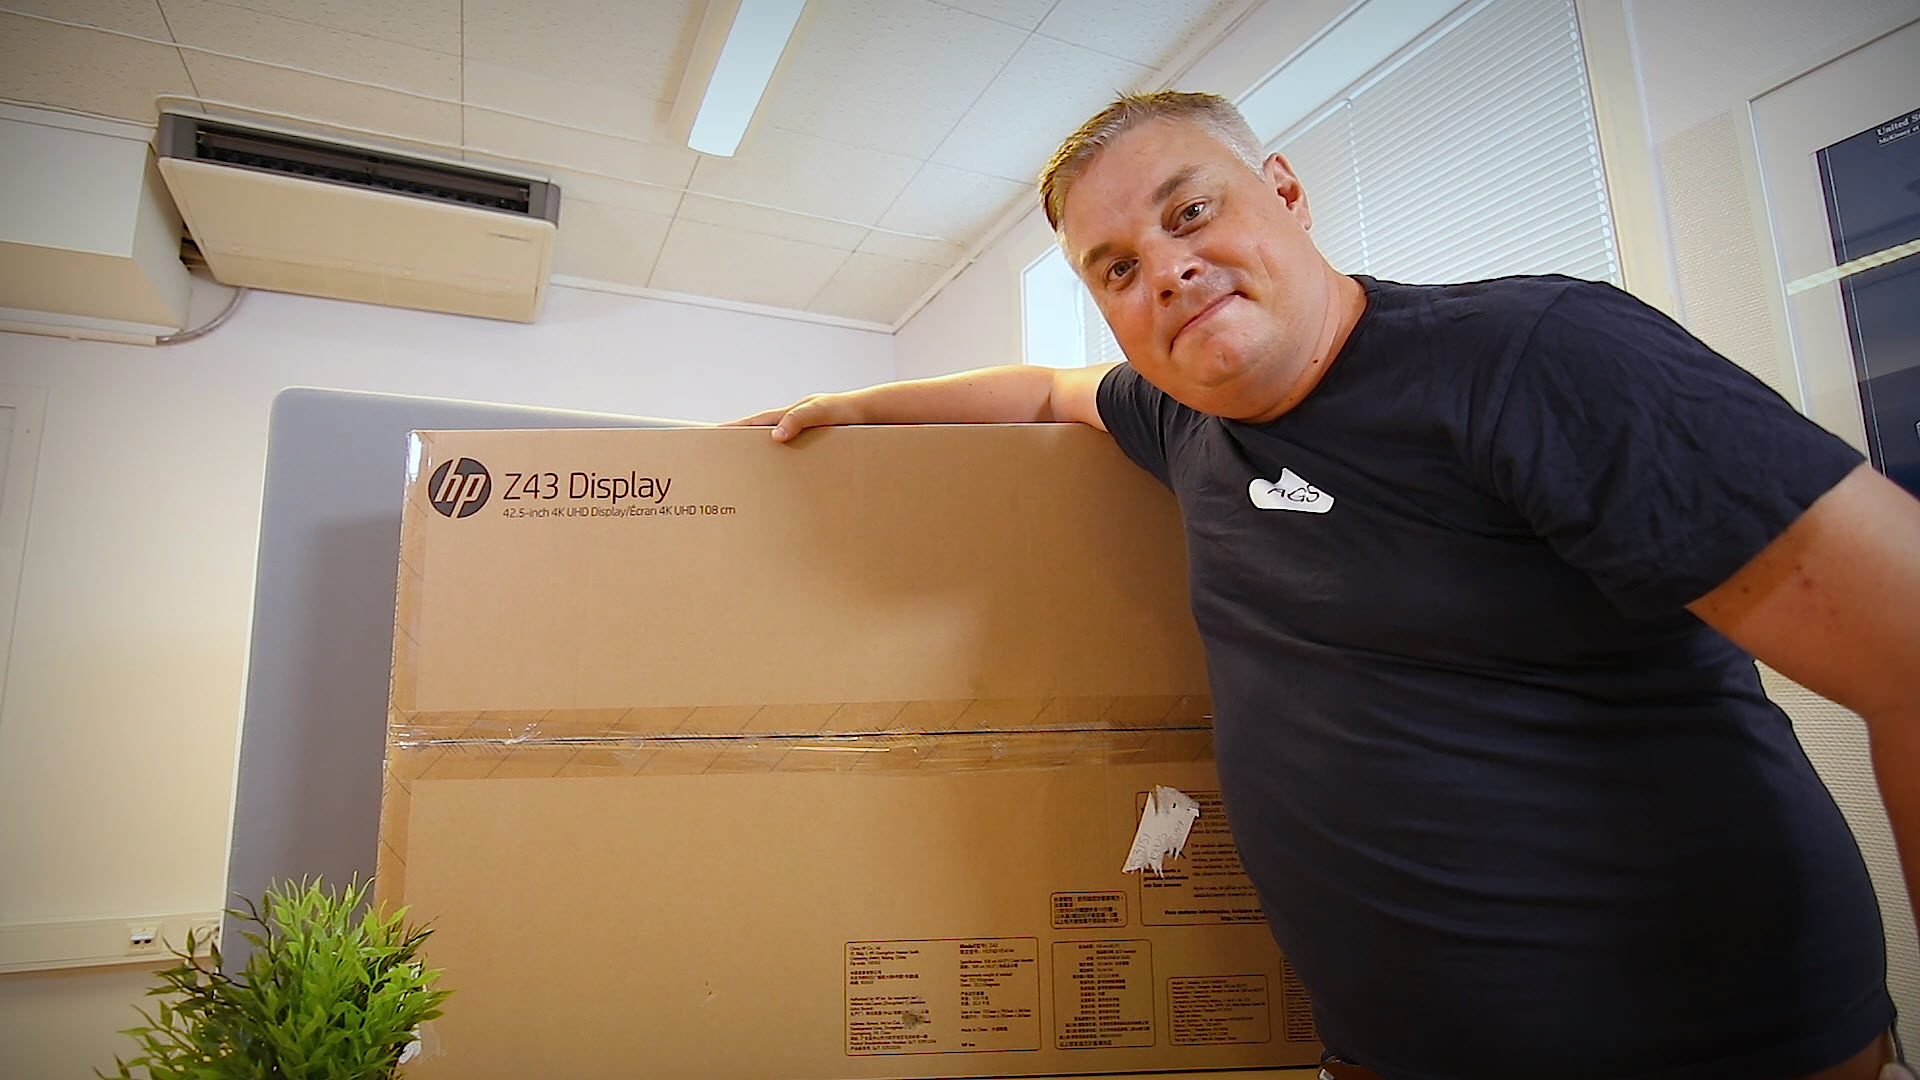 Unboxing og test av HP Z43 - 42,5 tommers 4k Ultra HD skjerm